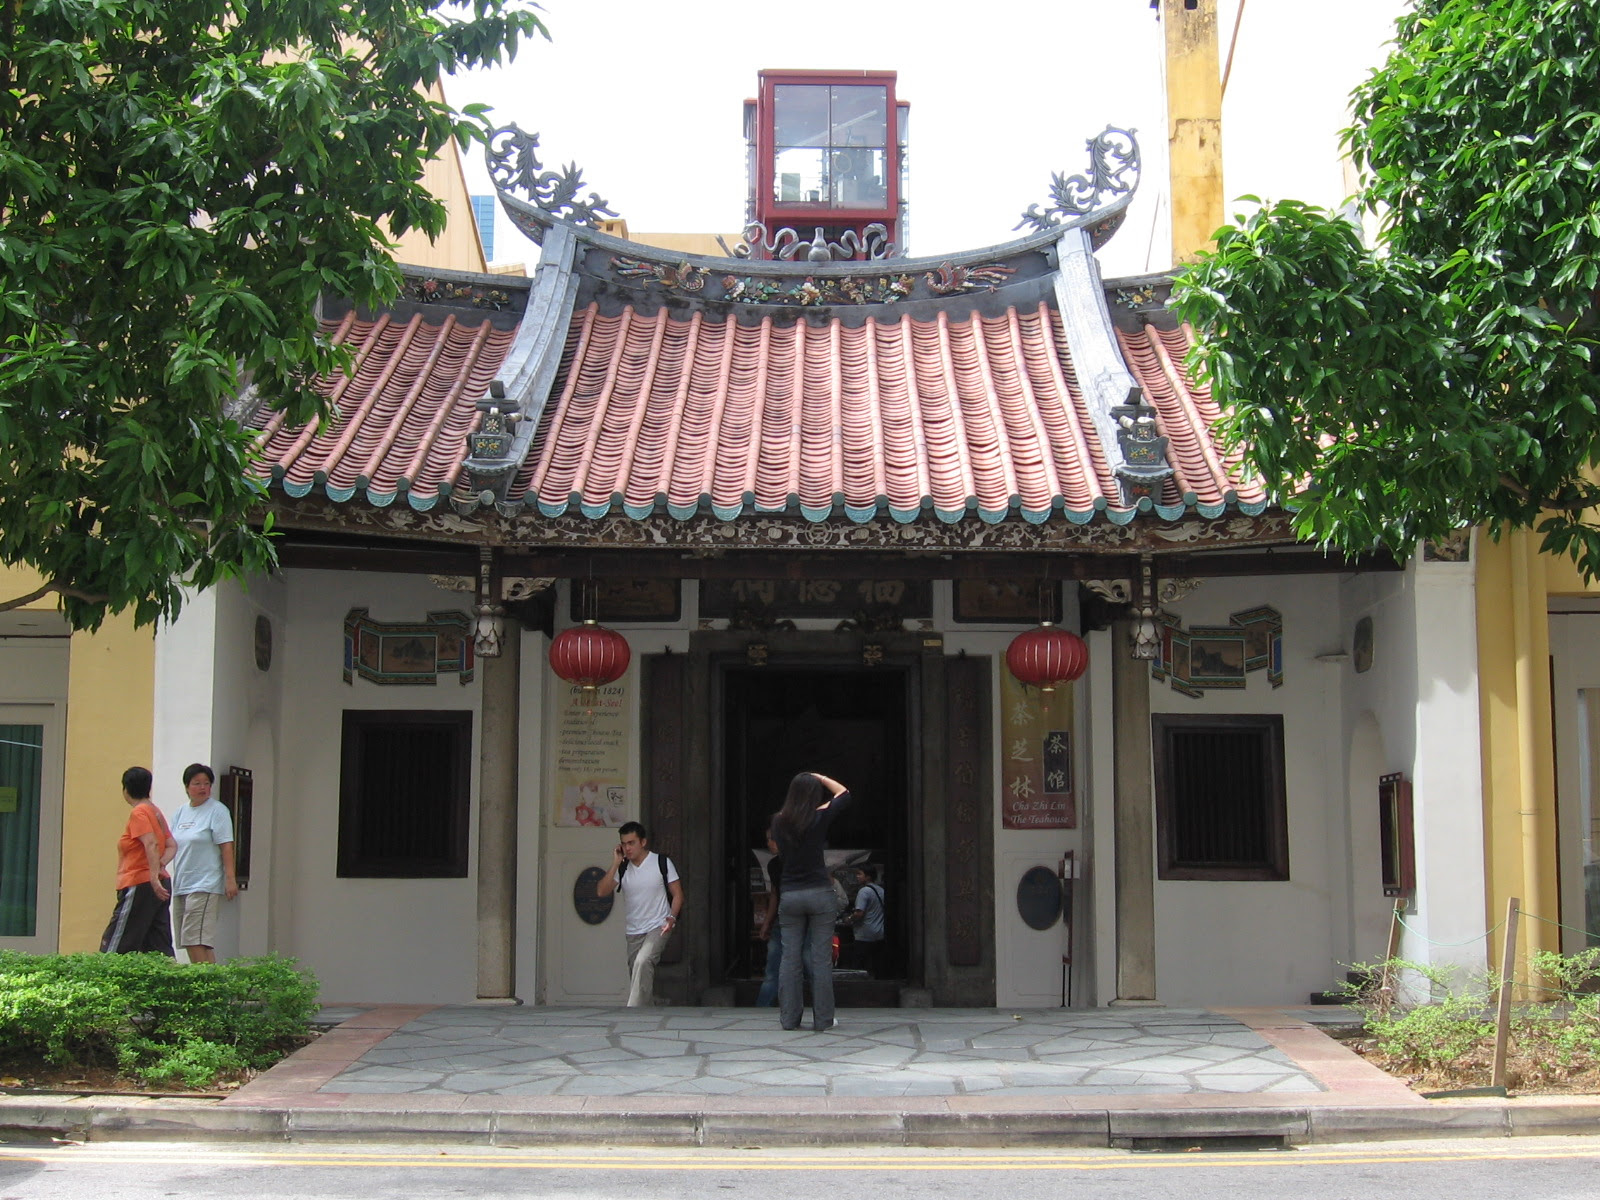 Fuk Tak Chi Museum Singapore Location Map,Location Map of Fuk Tak Chi Museum Singapore,Fuk Tak Chi Museum Singapore accommodation destinations attractions hotels map reviews photos pictures,Fuk Tak Chi Museum Temple Map